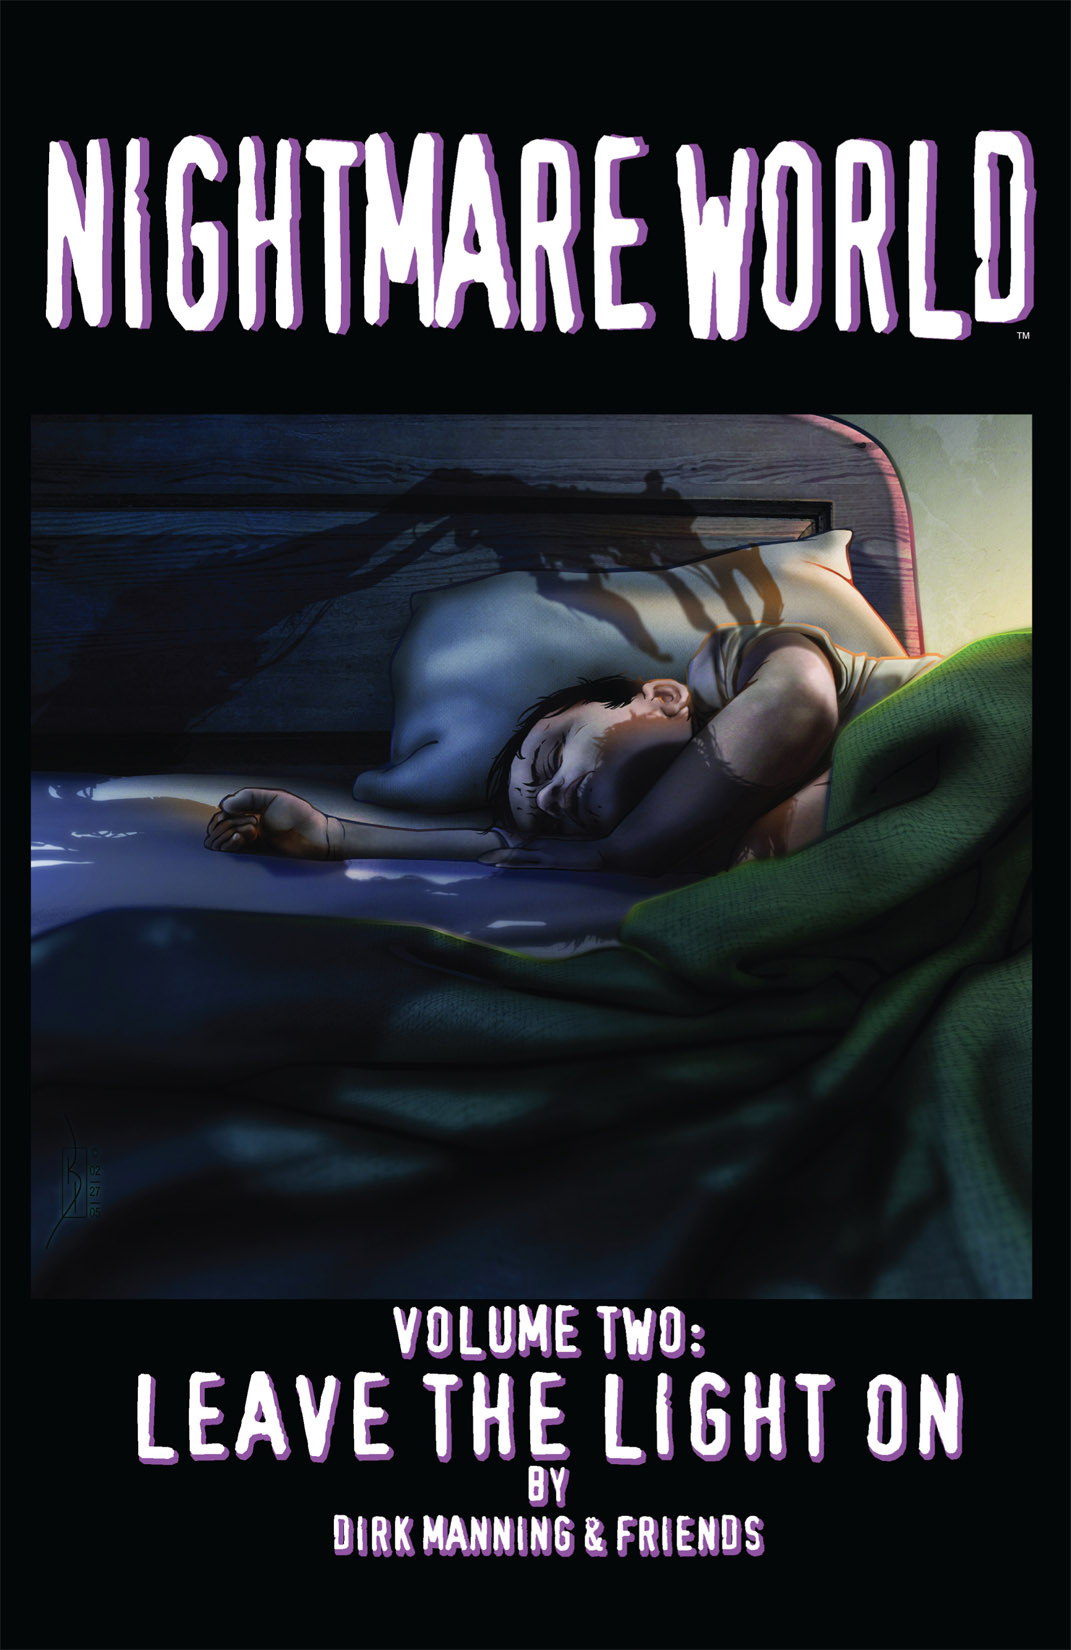 Read online Nightmare World comic -  Issue # Vol. 2 Leave the Light On - 1